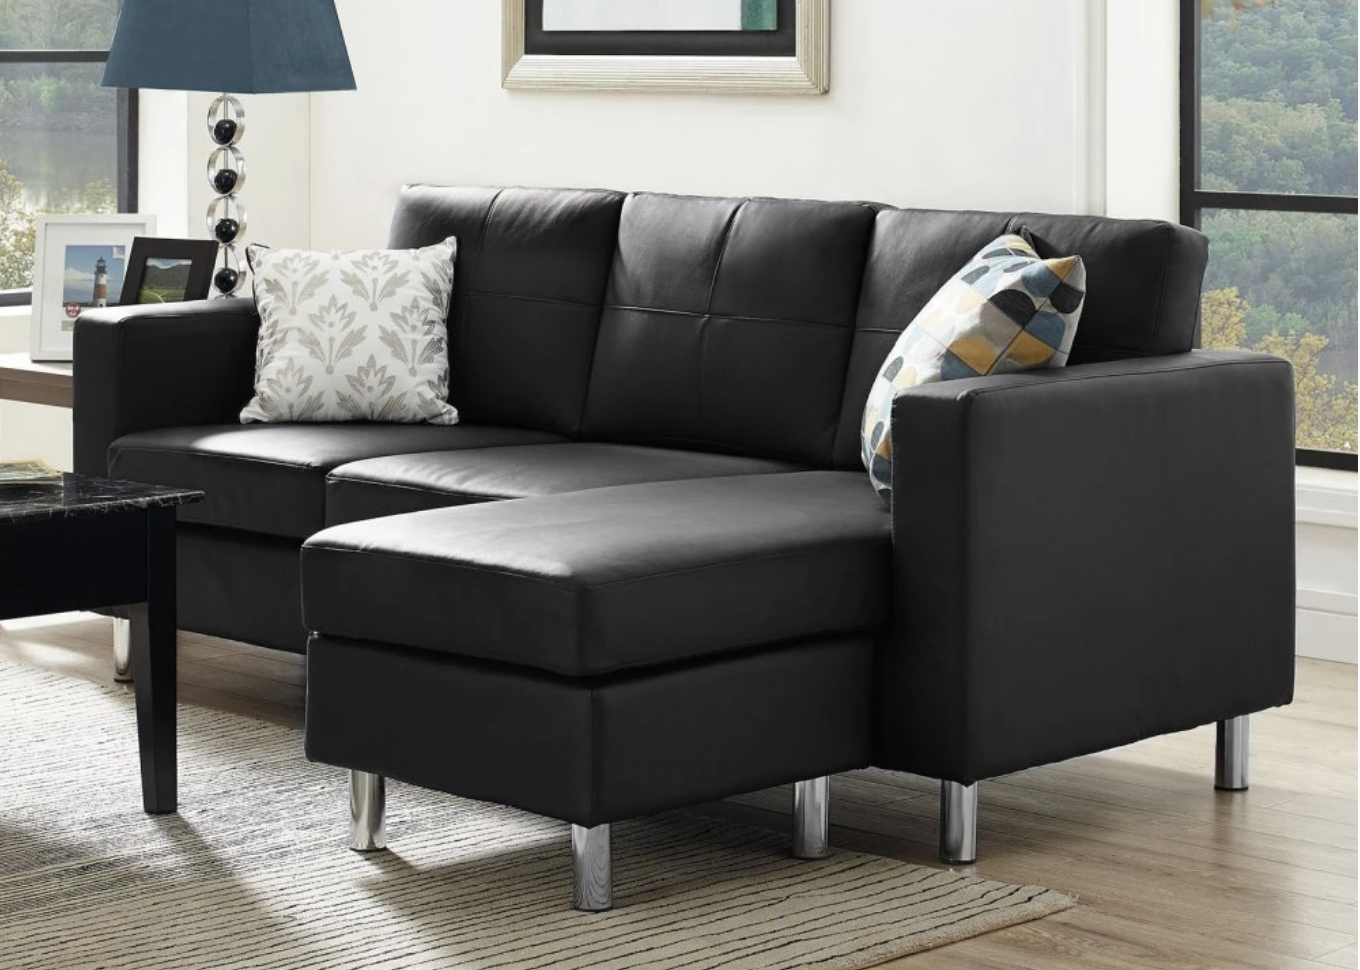 Recent 100X100 Sectional Sofas For 75 Modern Sectional Sofas For Small Spaces (2018) (View 20 of 20)